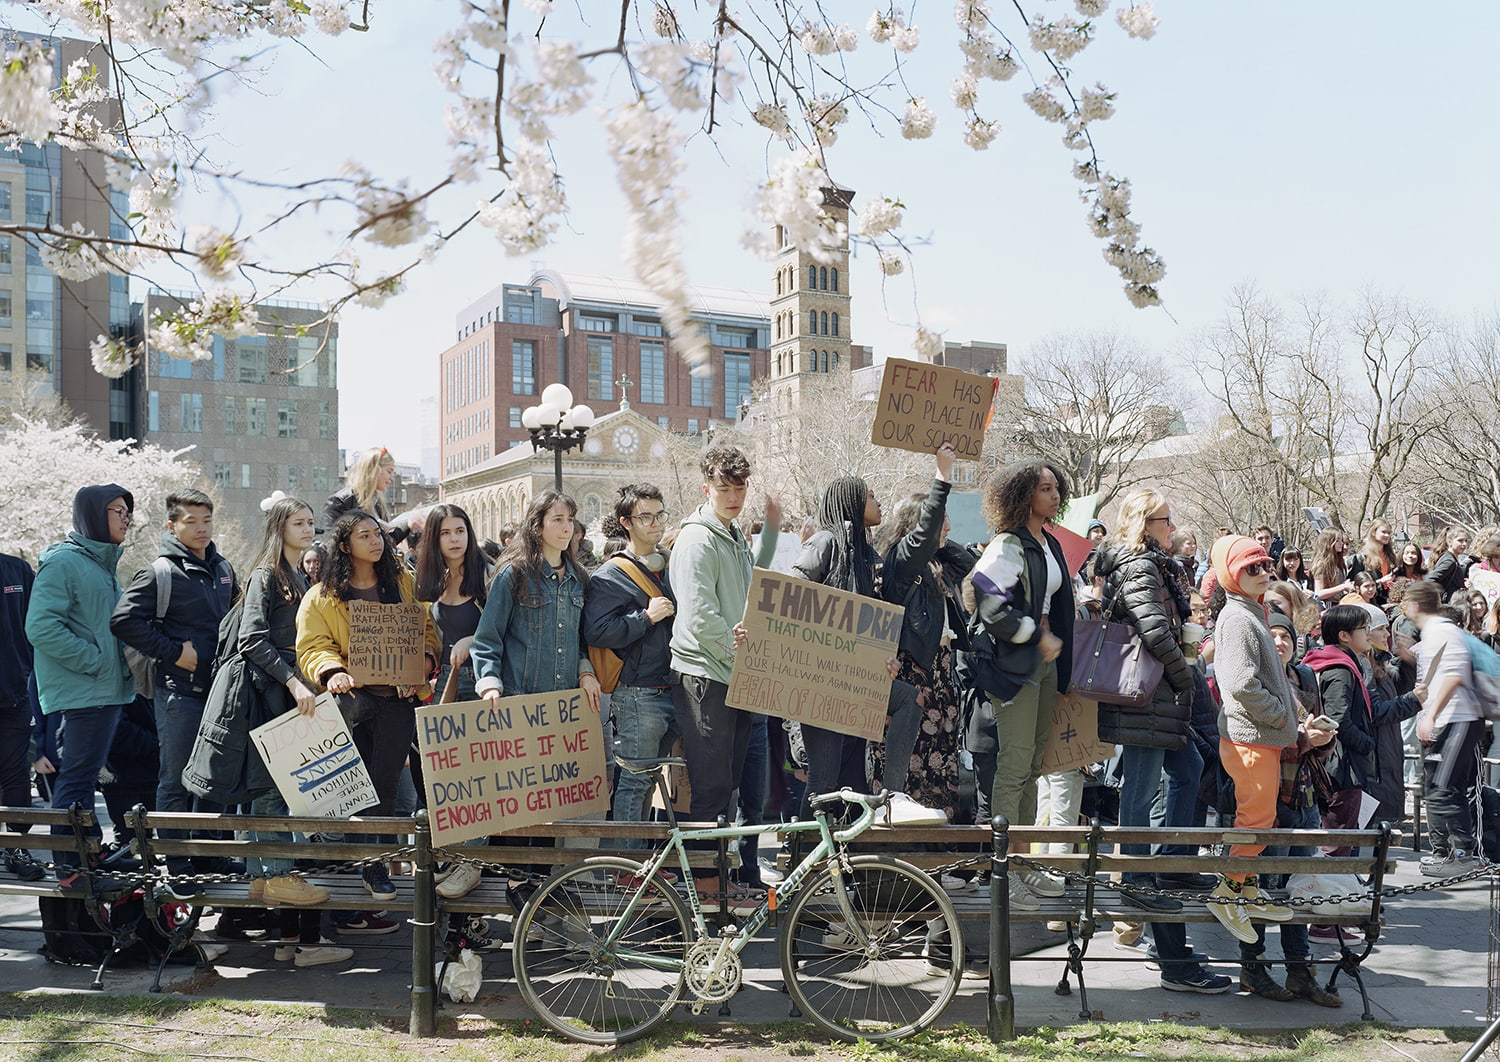 high school students protesting gun violence, Washington Square Park, New York City, April 20, 2018